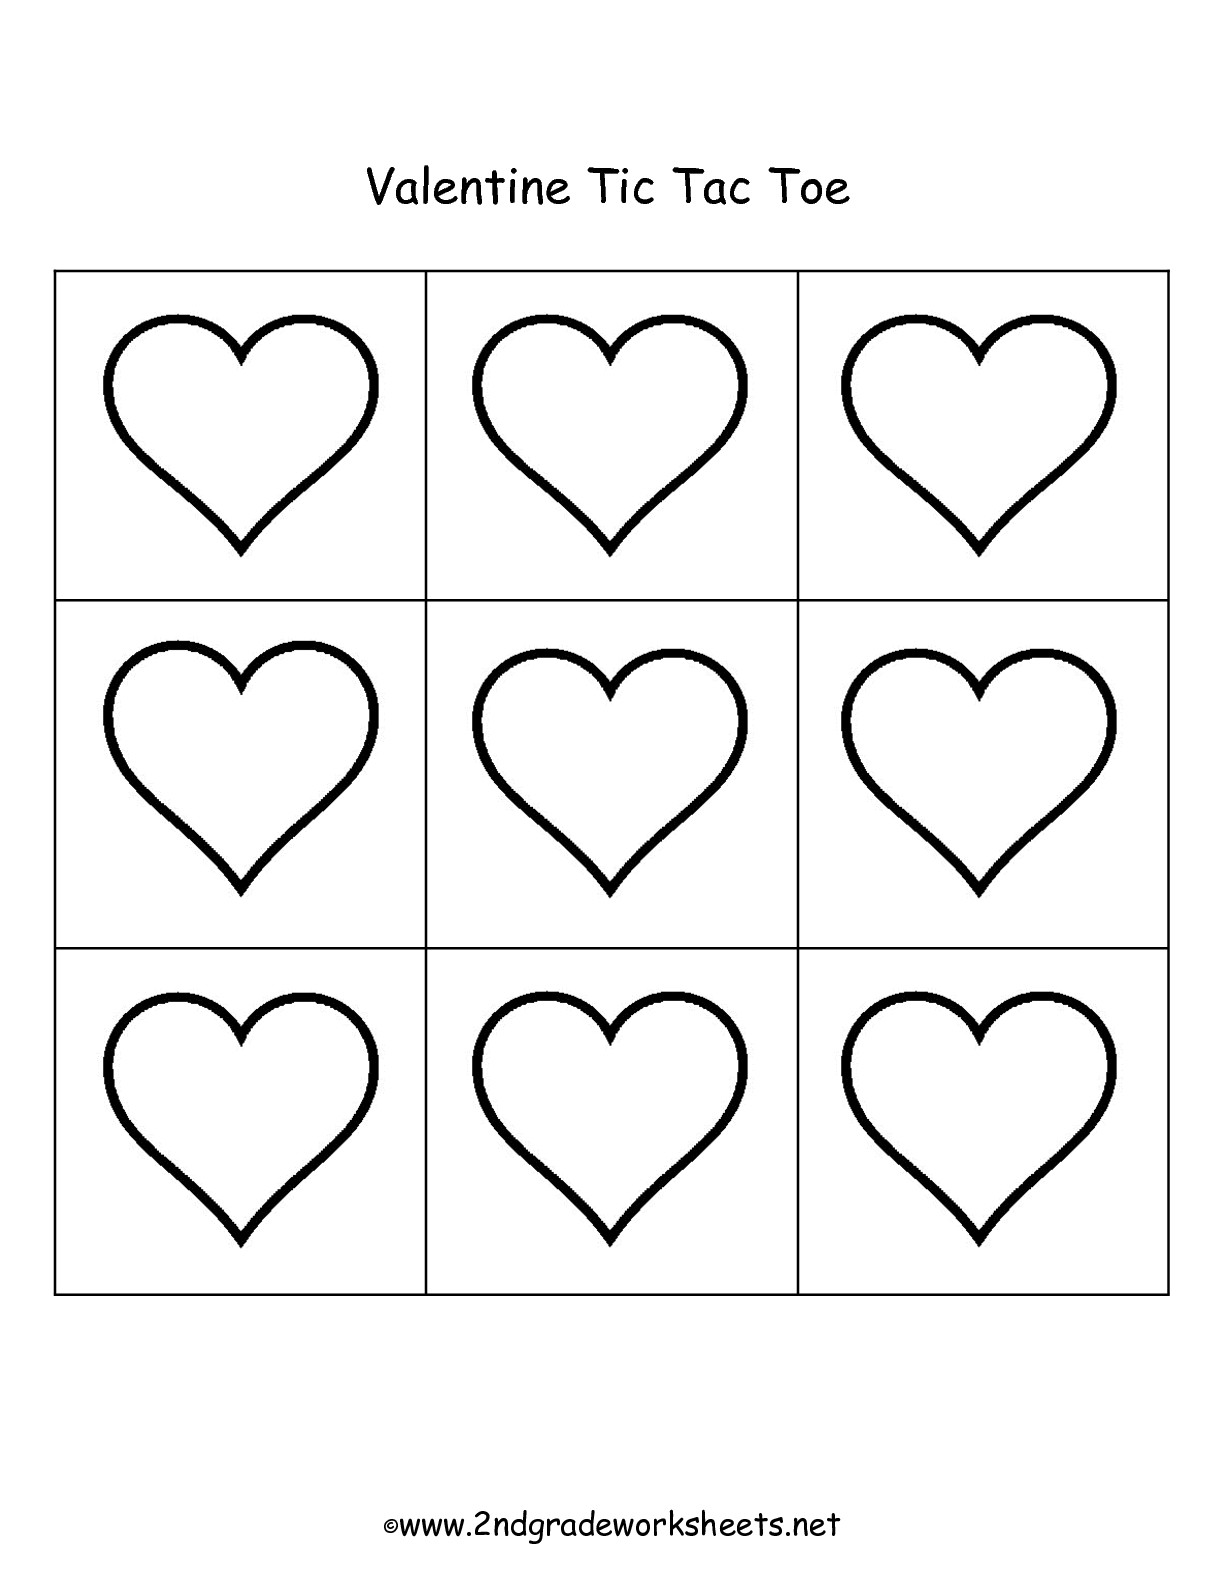 Worksheets Valentines Worksheets valentines day printouts and worksheets worksheet